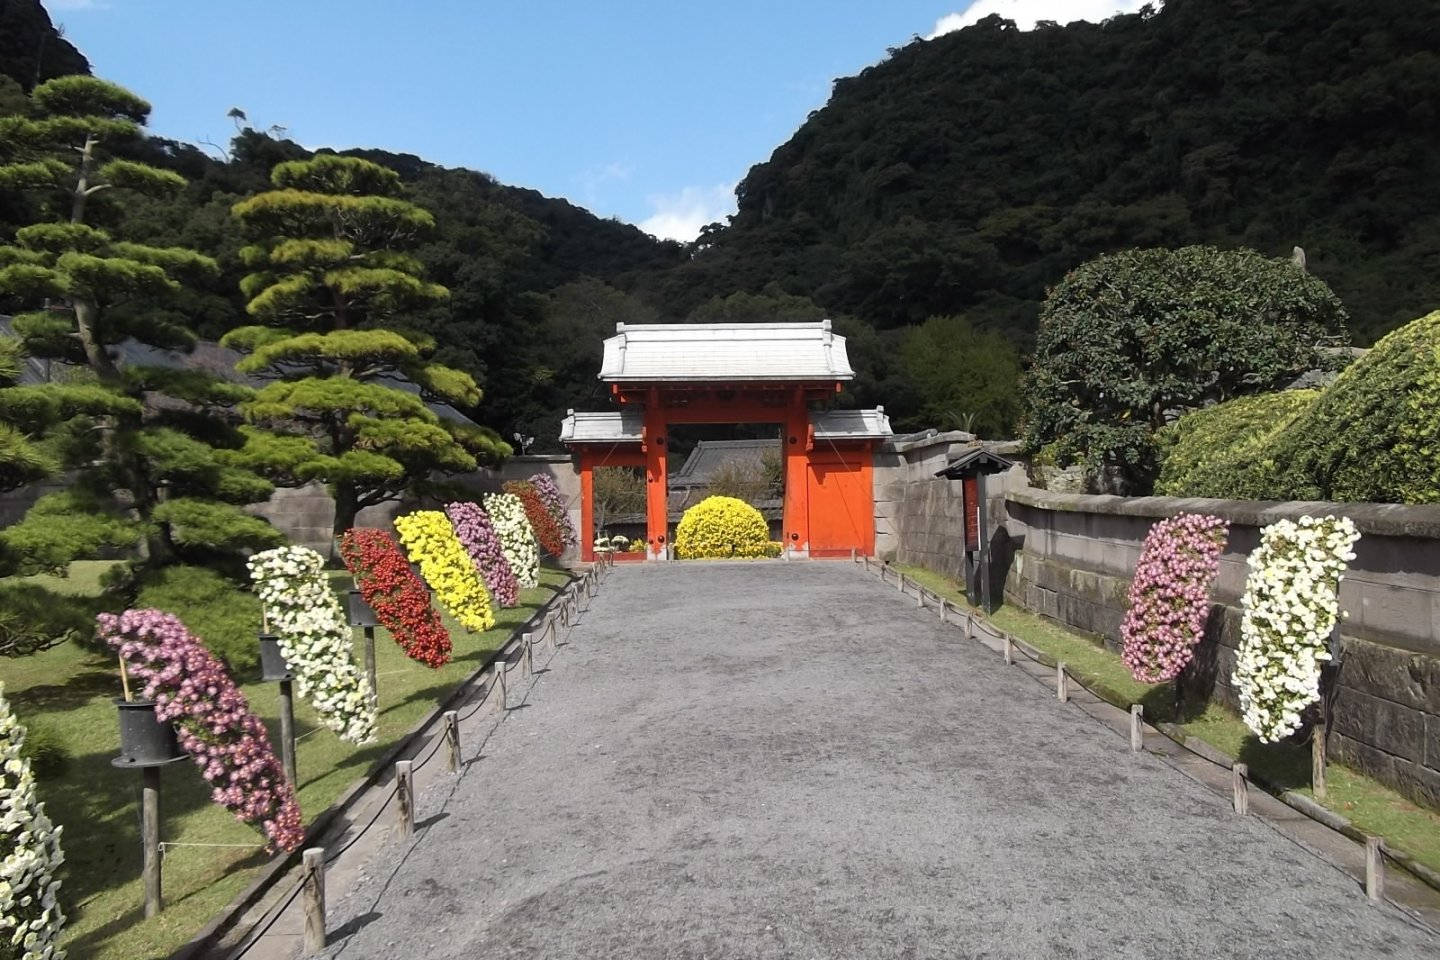 Chrysanthemum displays lining the path to the little gate